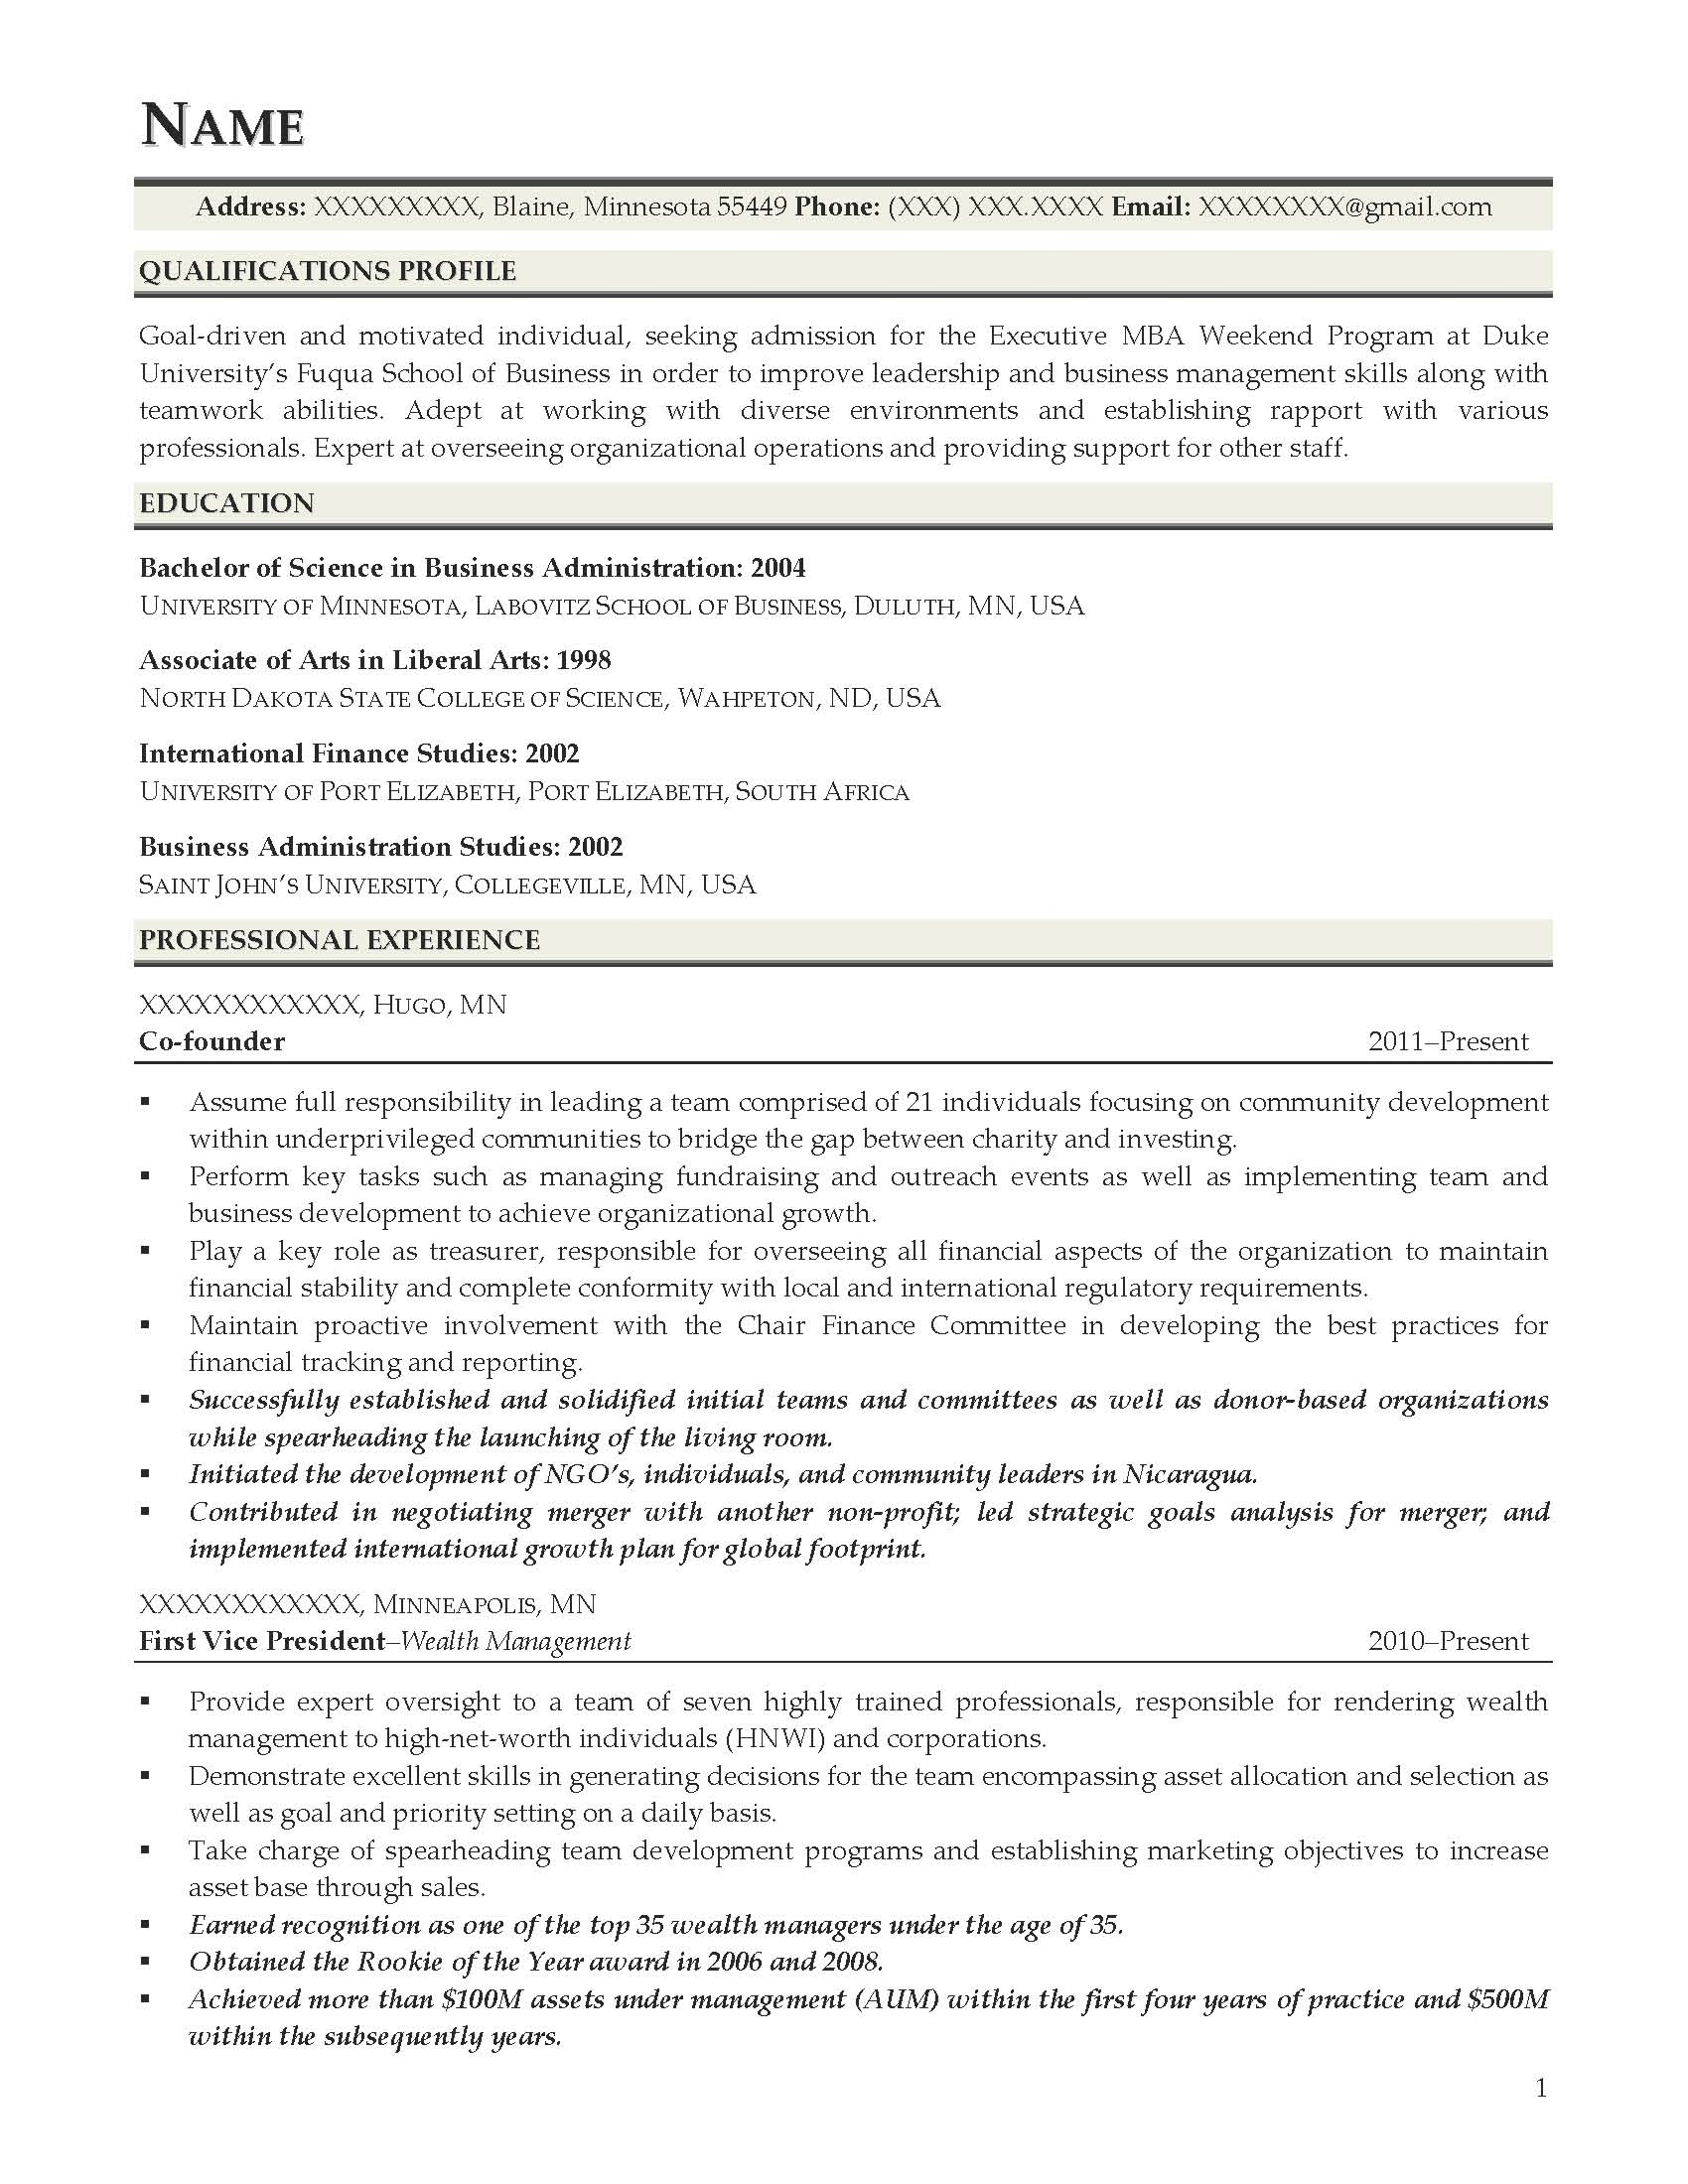 Executive MBA Weekend Program Resume Sample   After 1  Mba Application Resume Sample